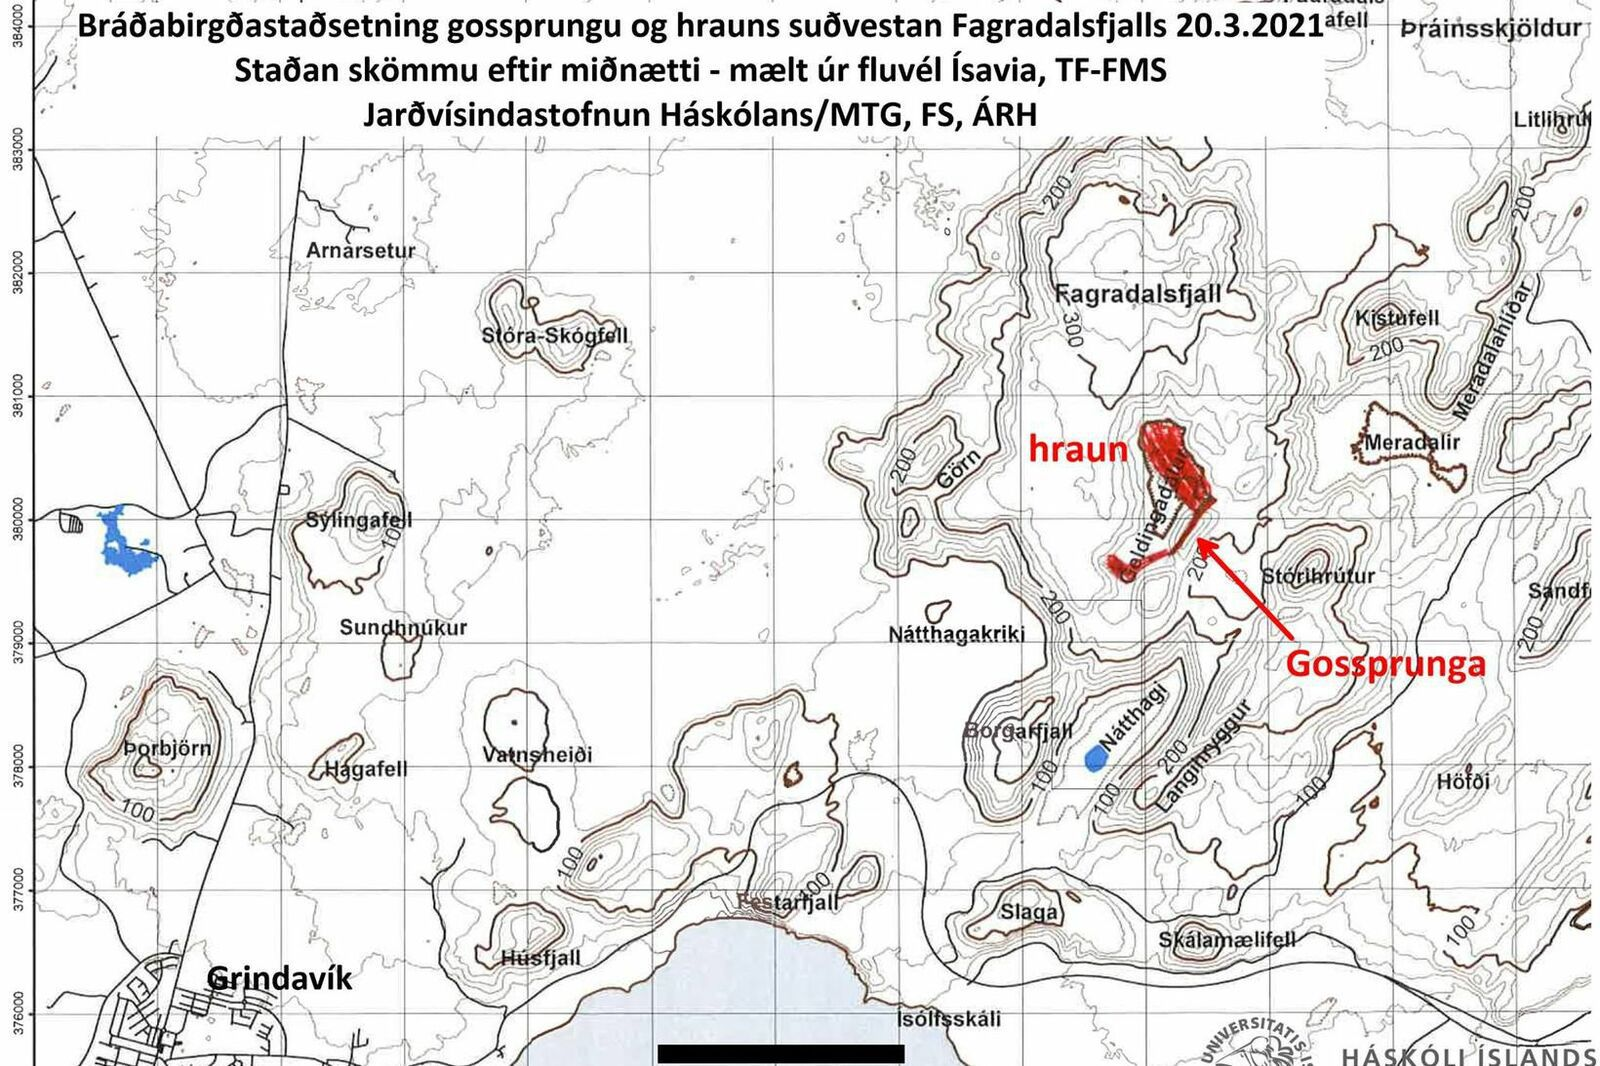 Reykjanes Peninsula - A new map from the Institute of Earth Sciences at the University of Iceland shows the location of the eruption crack on the southeast slopes of Geldingadalur